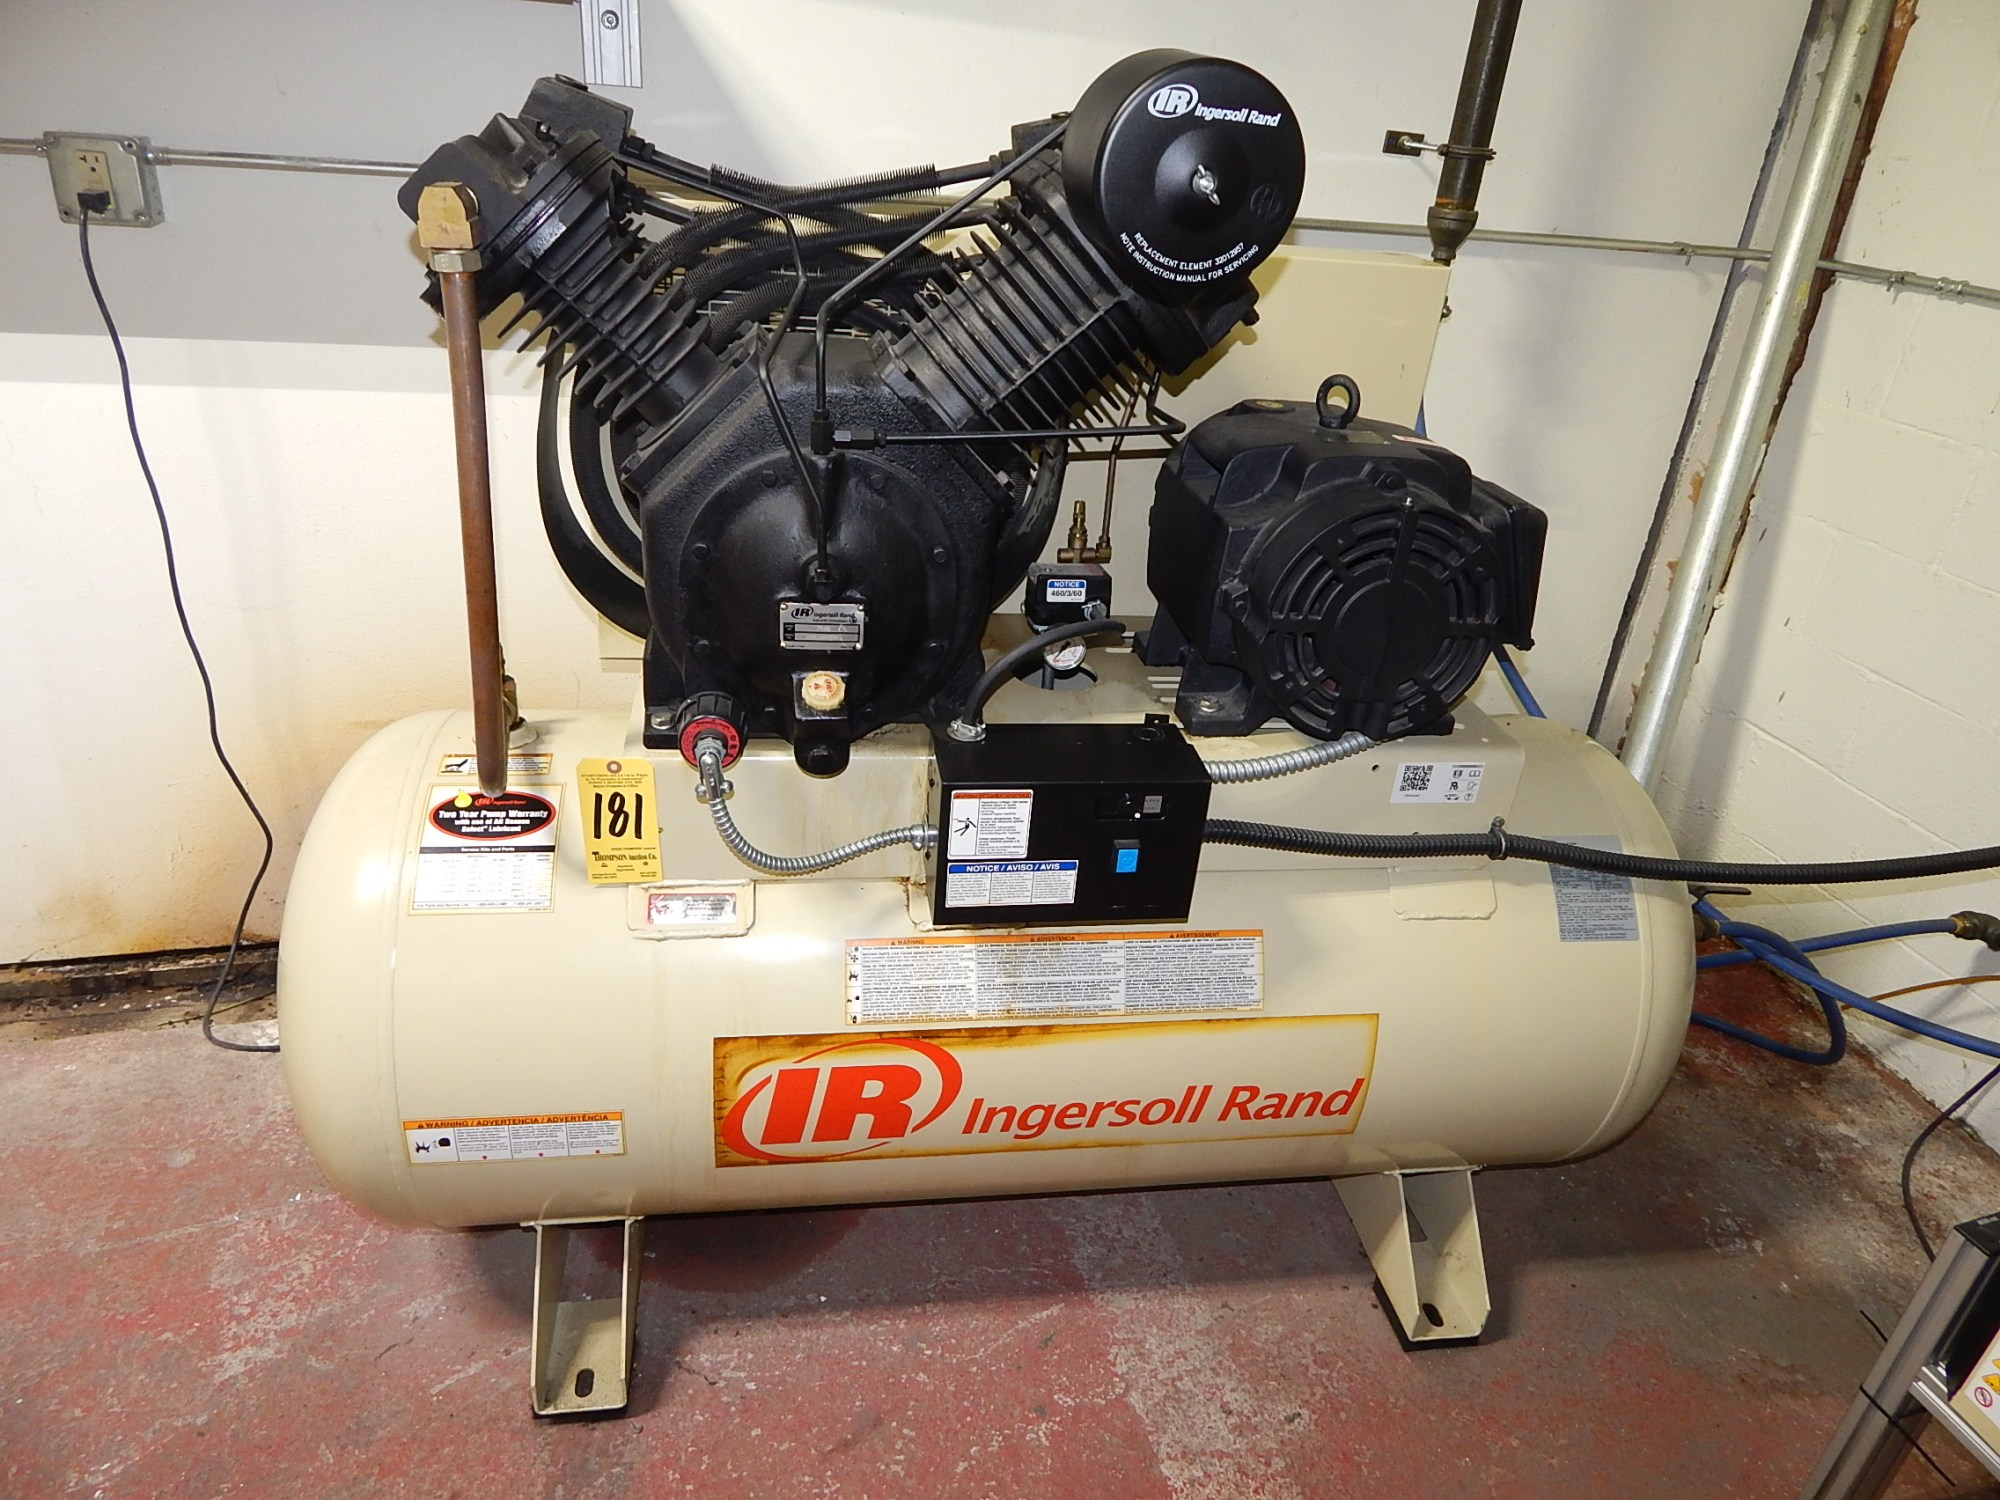 hight resolution of  schematic ingersoll rand model 7100e15 2 stage tank mounted air compressor s on air compressor stage air compressor wiring